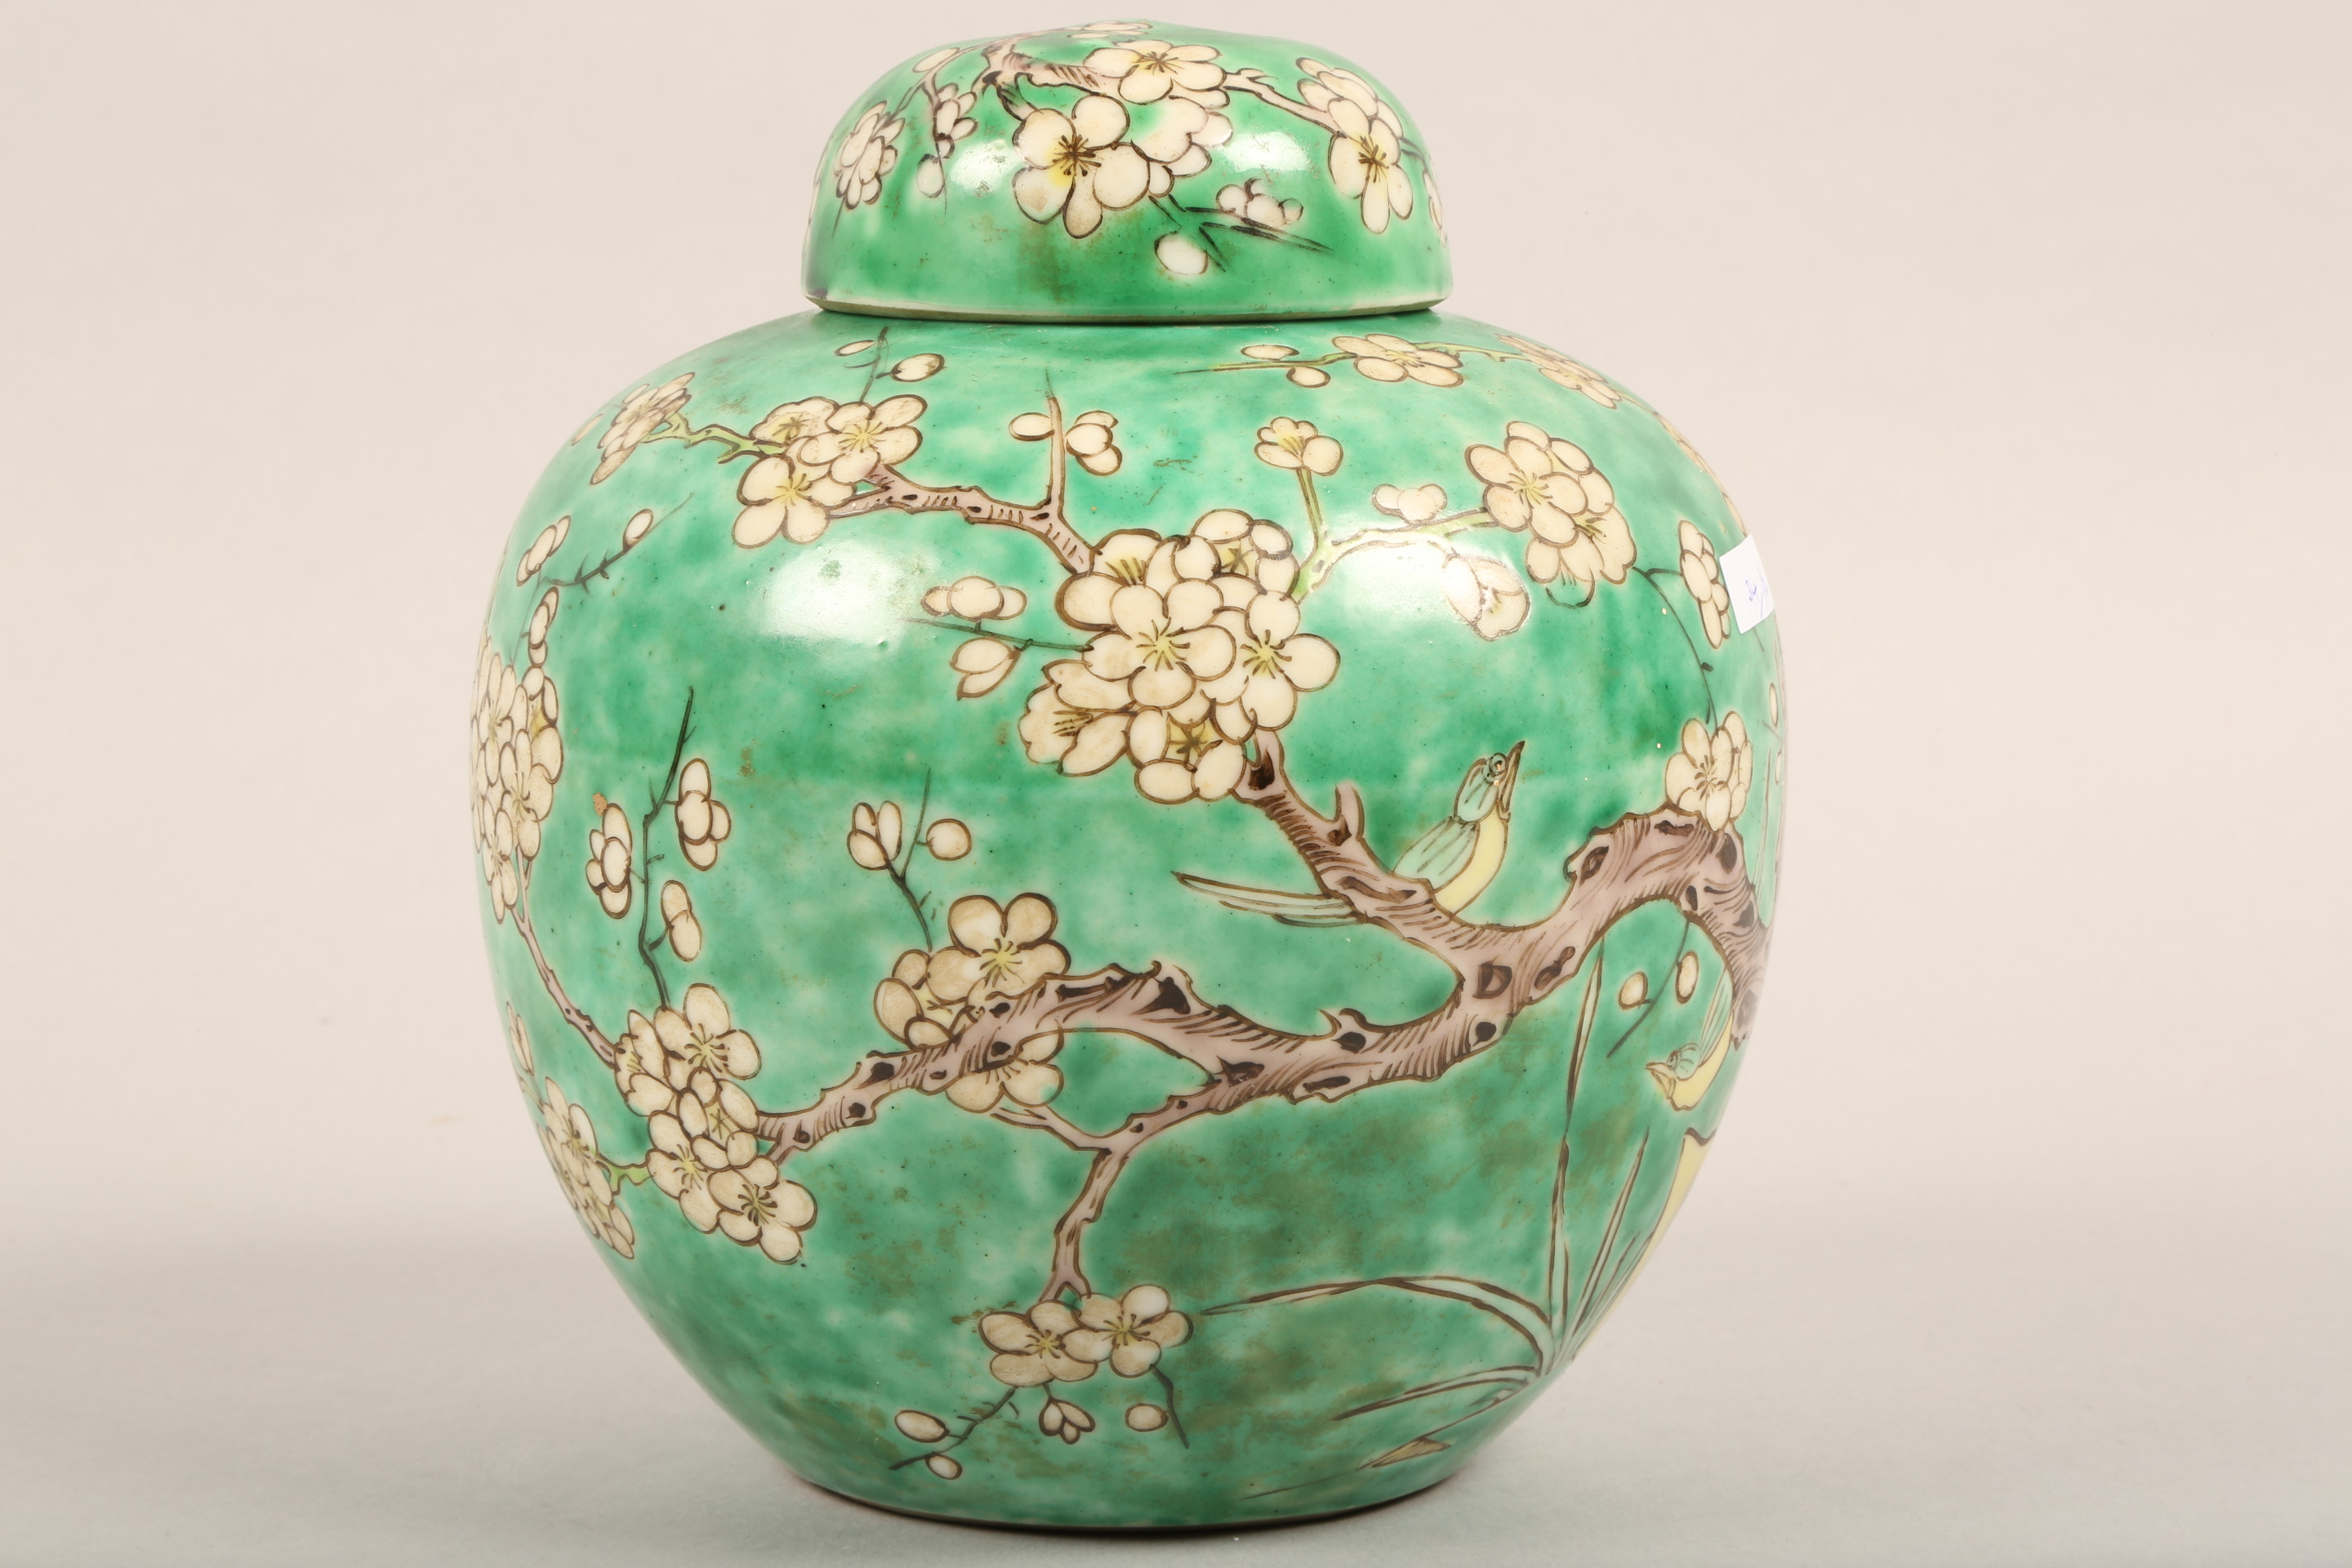 19th/20th century Chinese ginger jar and cover, green ground decorated with birds in a flowering - Image 2 of 6